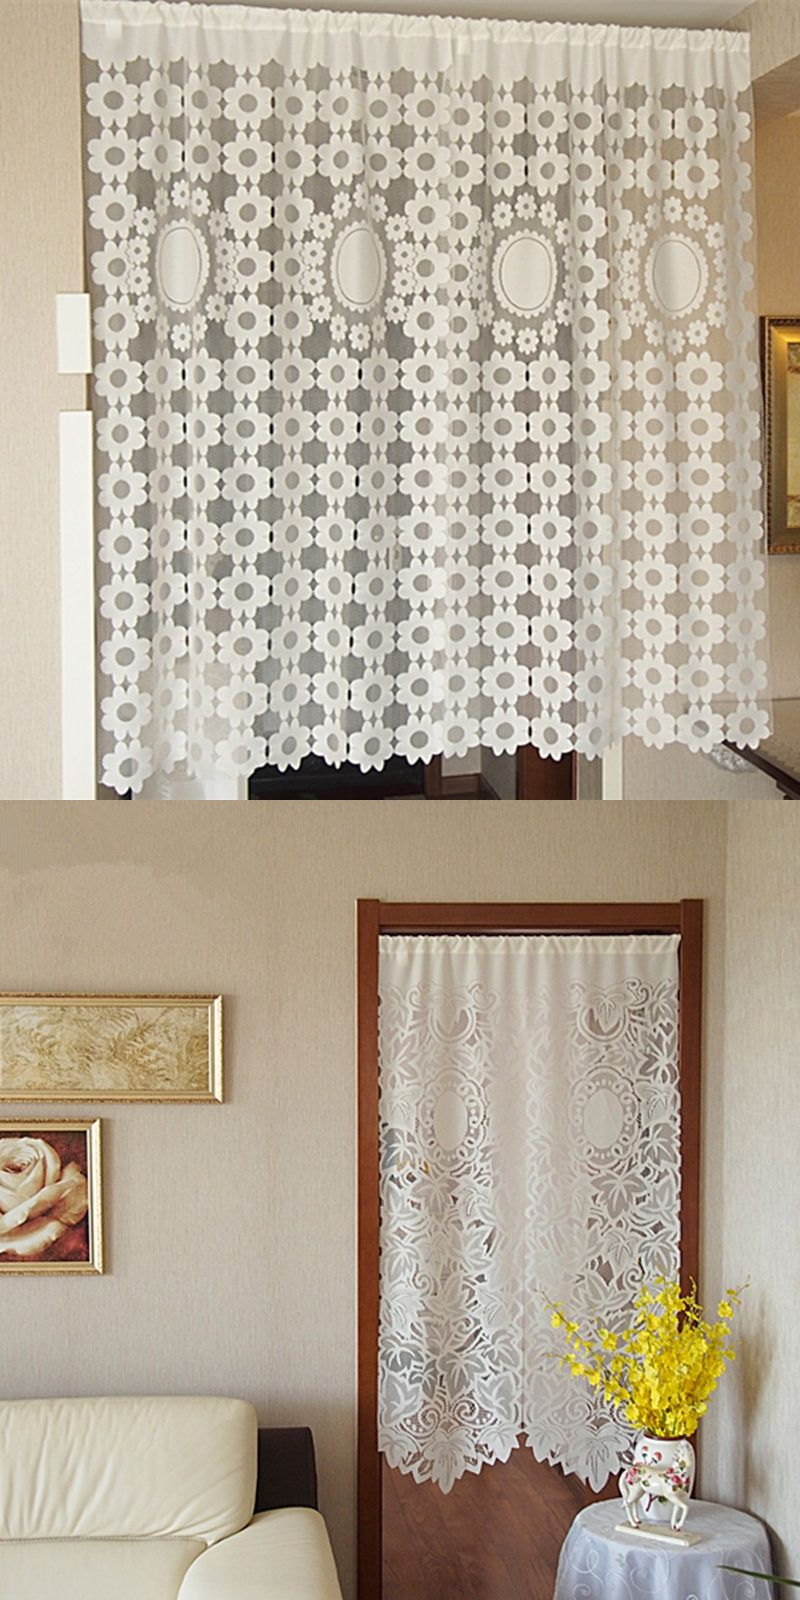 1piece Korean Style Door Screens 2 Designs Door Curtains Polyester Net Yarn  Rustic Kitchen/ Bedroom